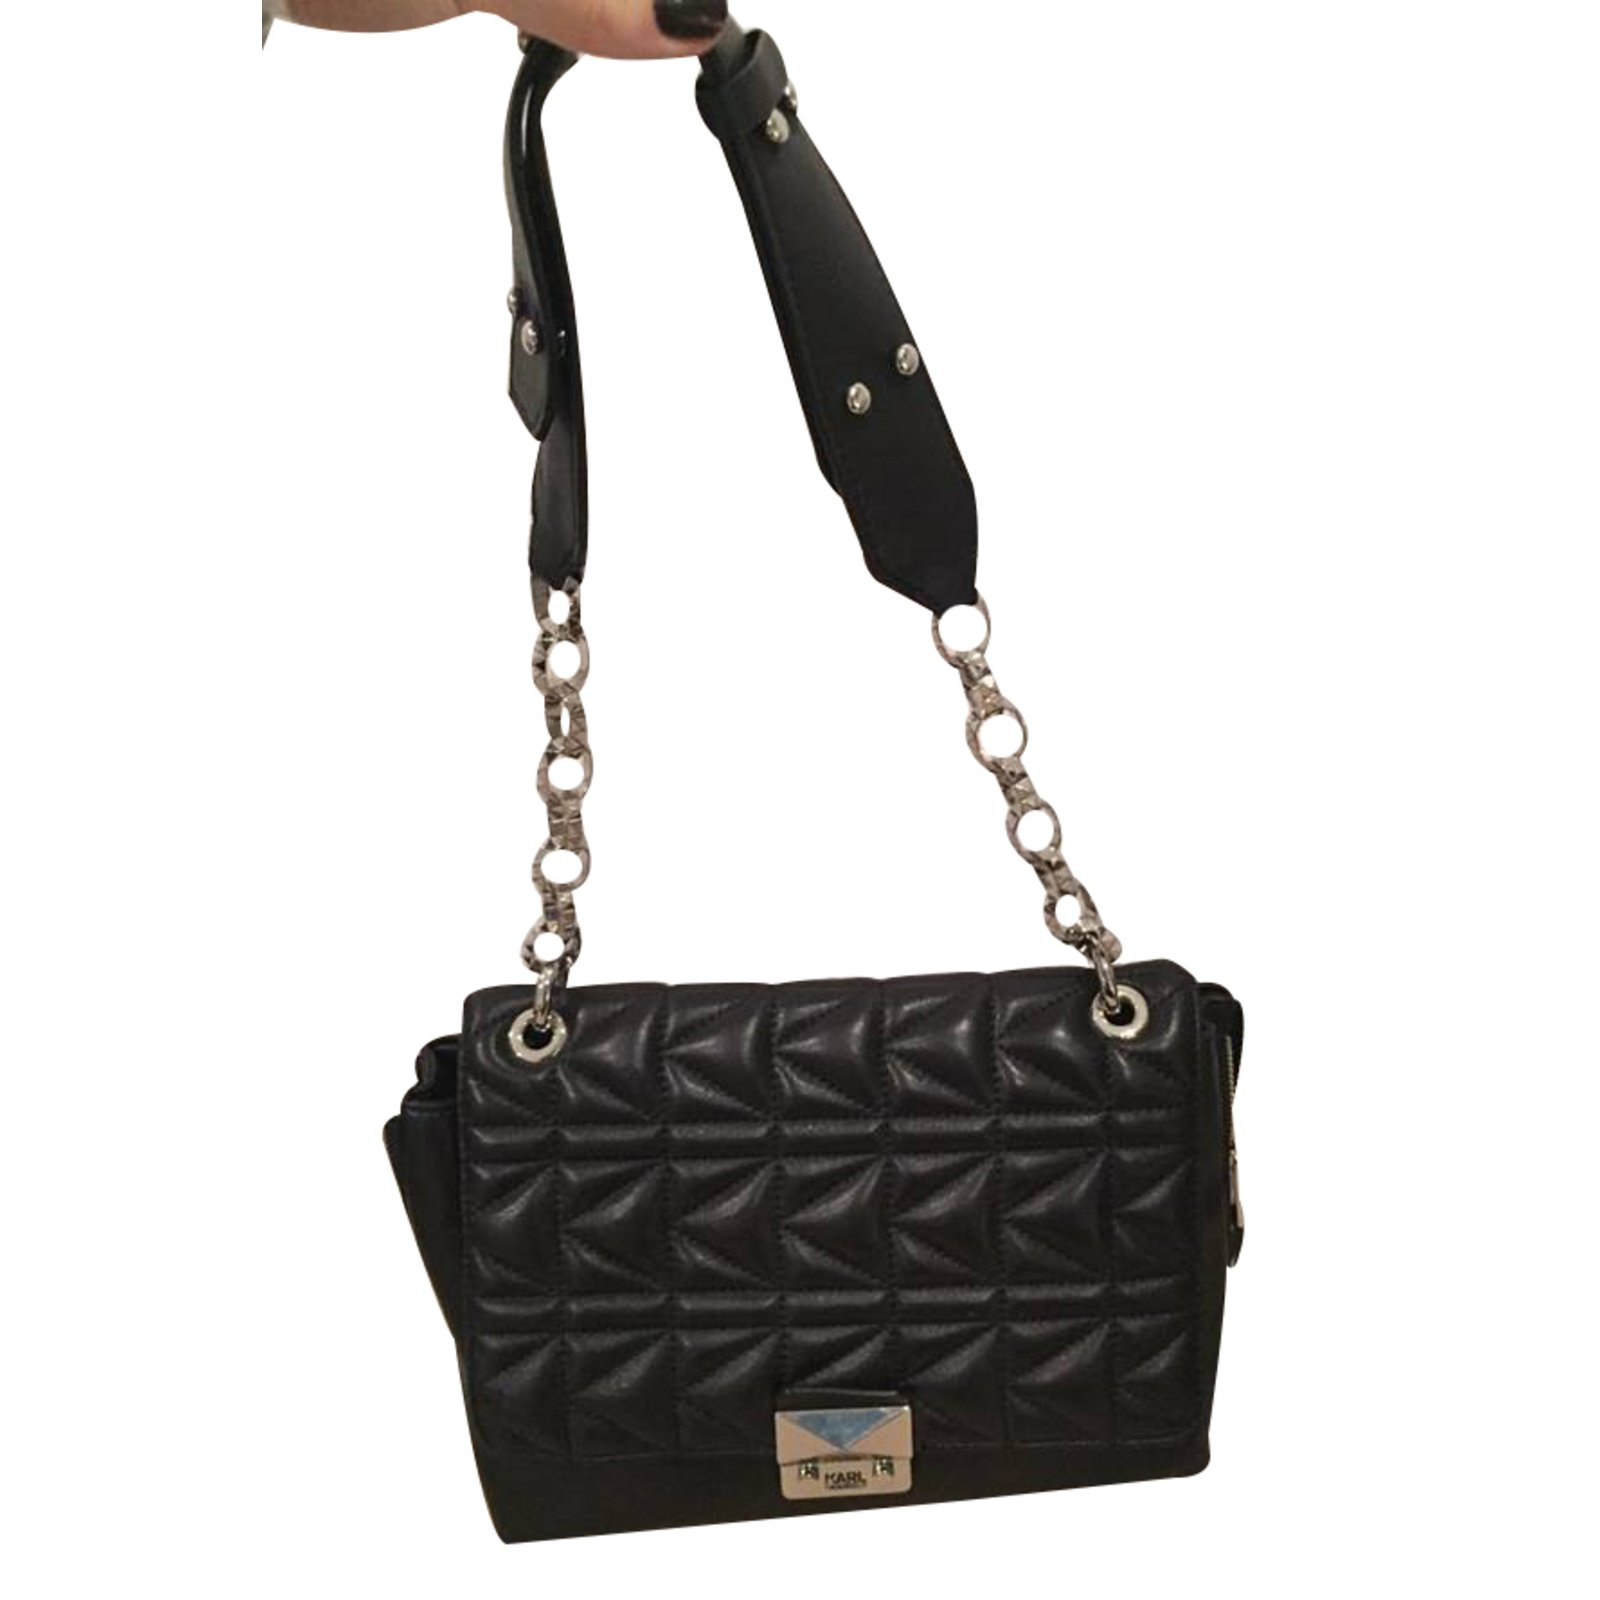 Karl Lagerfeld Handbag Handbags Leather Black Ref 26220